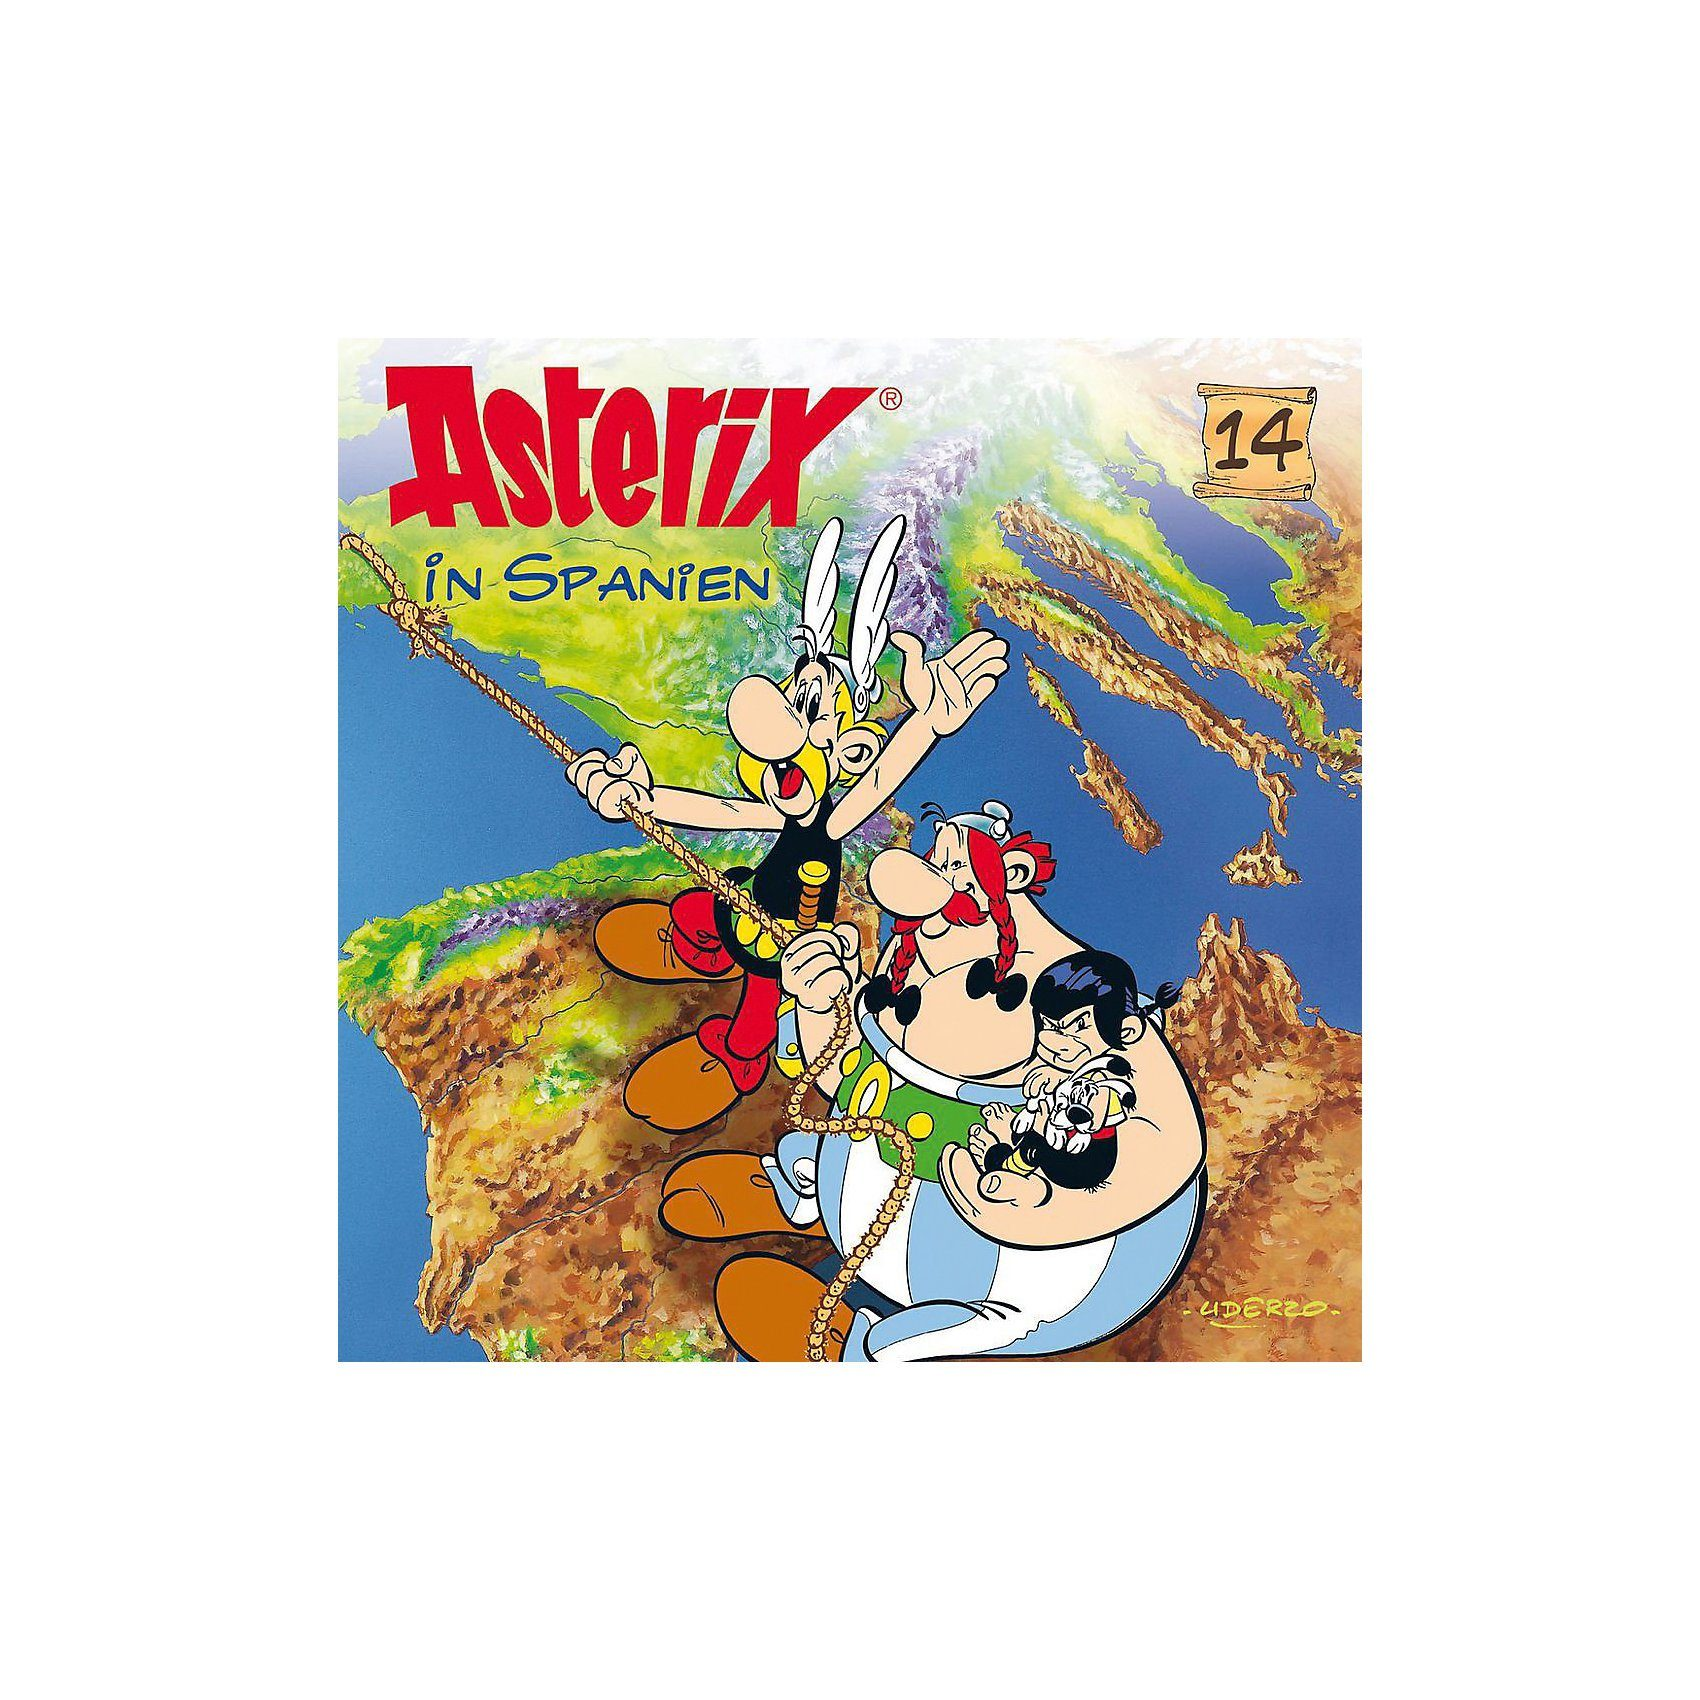 Universal CD Asterix 14 - Asterix in Spanien